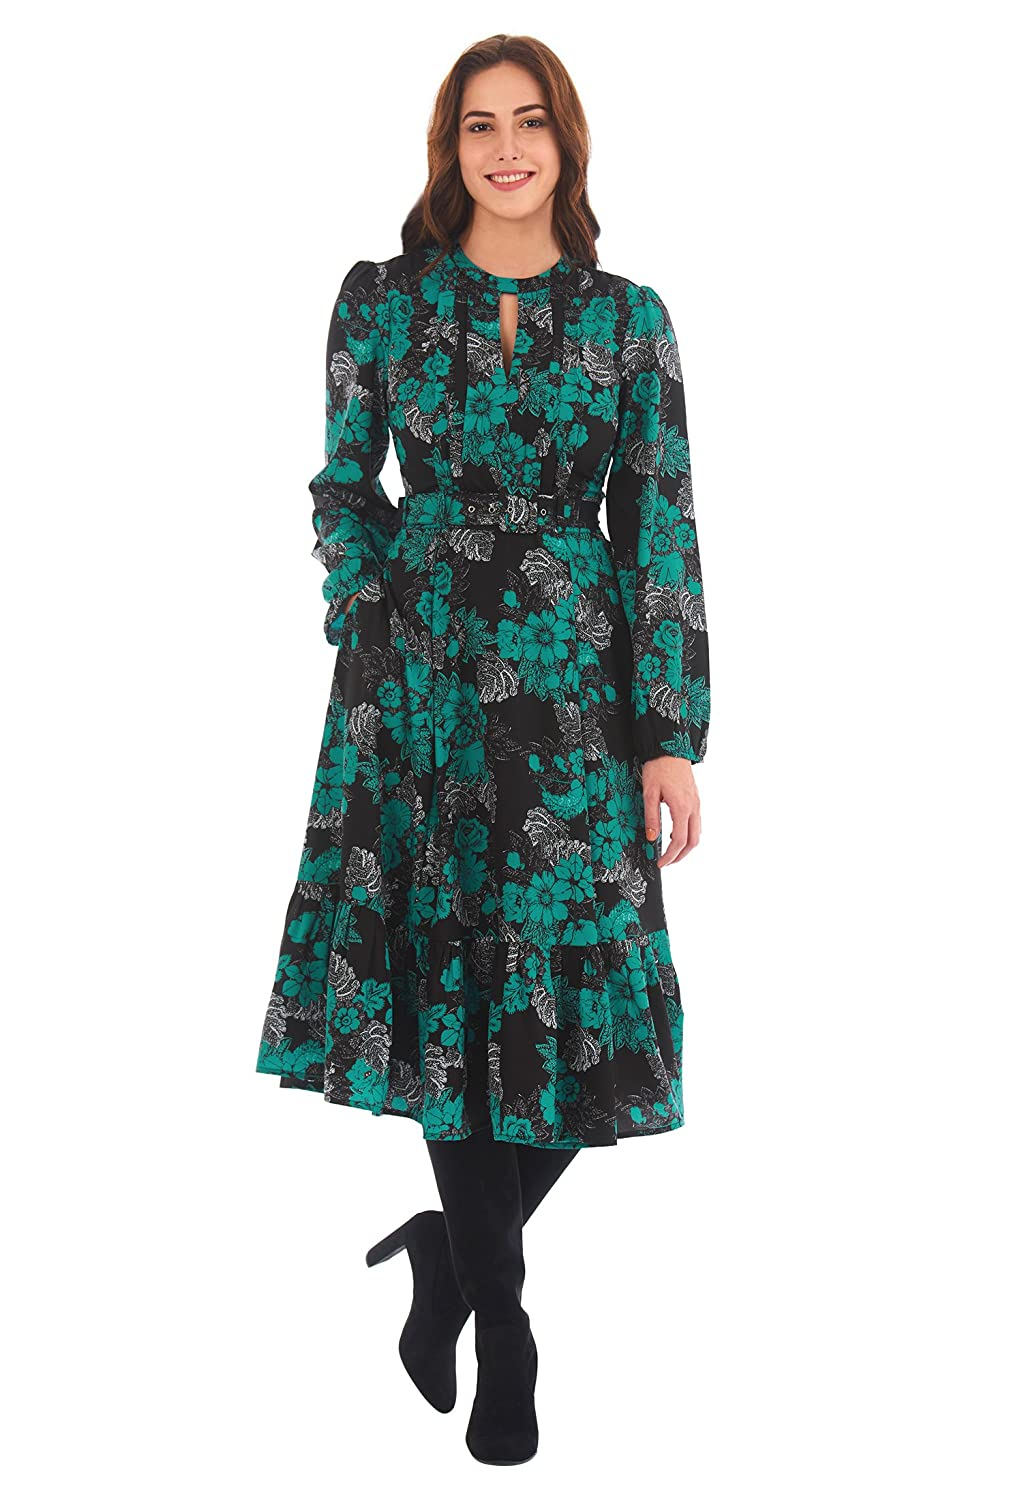 1940s Style Dresses | 40s Dress, Swing Dress Floral print crepe flounce hem dress $69.95 AT vintagedancer.com